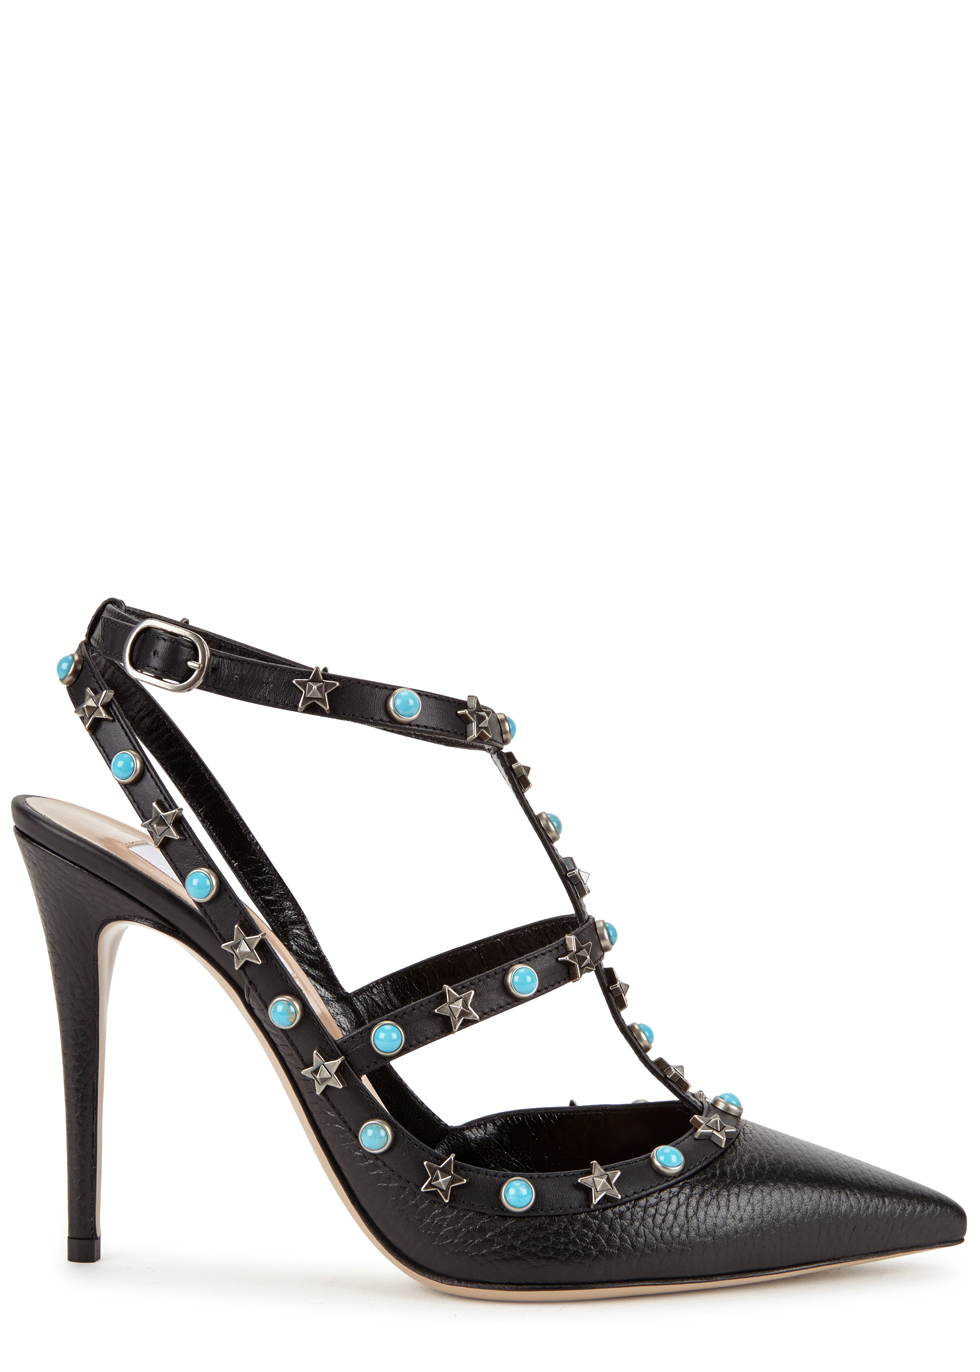 Rockstud 100 Star Embellished Leather Pumps - predominant colour: black; occasions: evening; material: leather; heel height: high; embellishment: studs; ankle detail: ankle strap; heel: stiletto; toe: pointed toe; style: courts; finish: plain; pattern: plain; season: a/w 2016; wardrobe: event